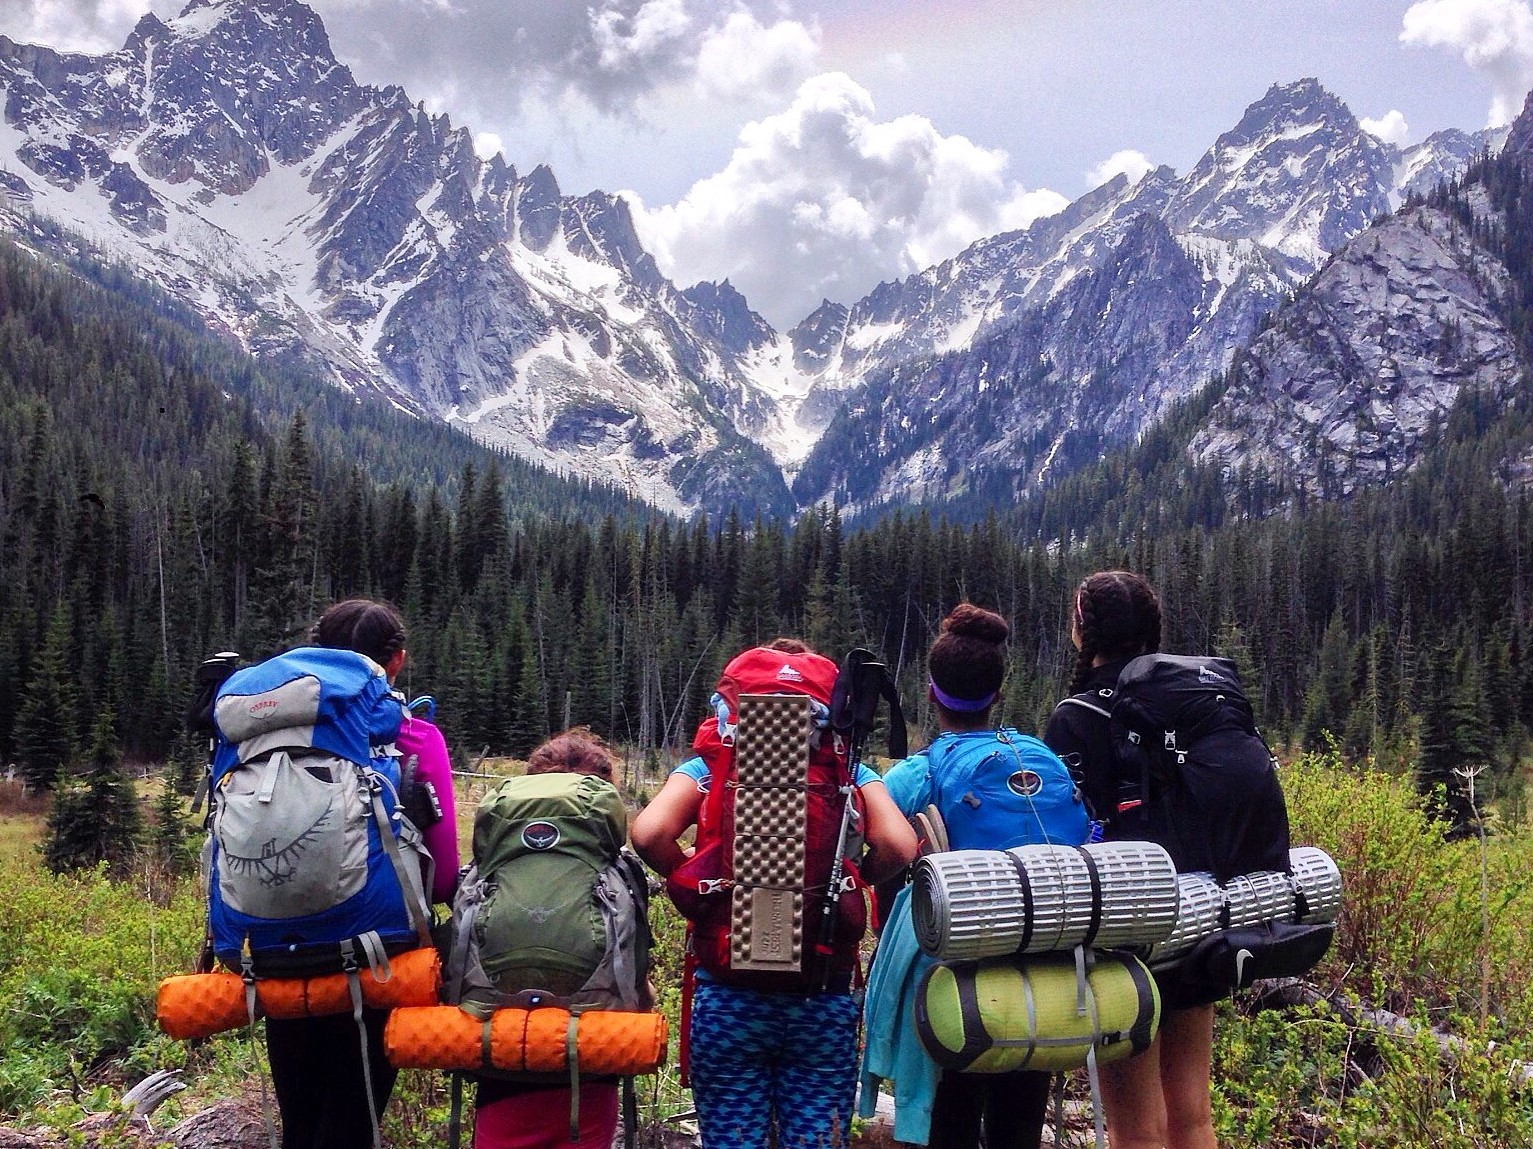 A row of hikers stand looking away from the camera and up at a snowy peak in the distance. They are all wearing large backpacking packs with assorted gear strapped on the exterior.